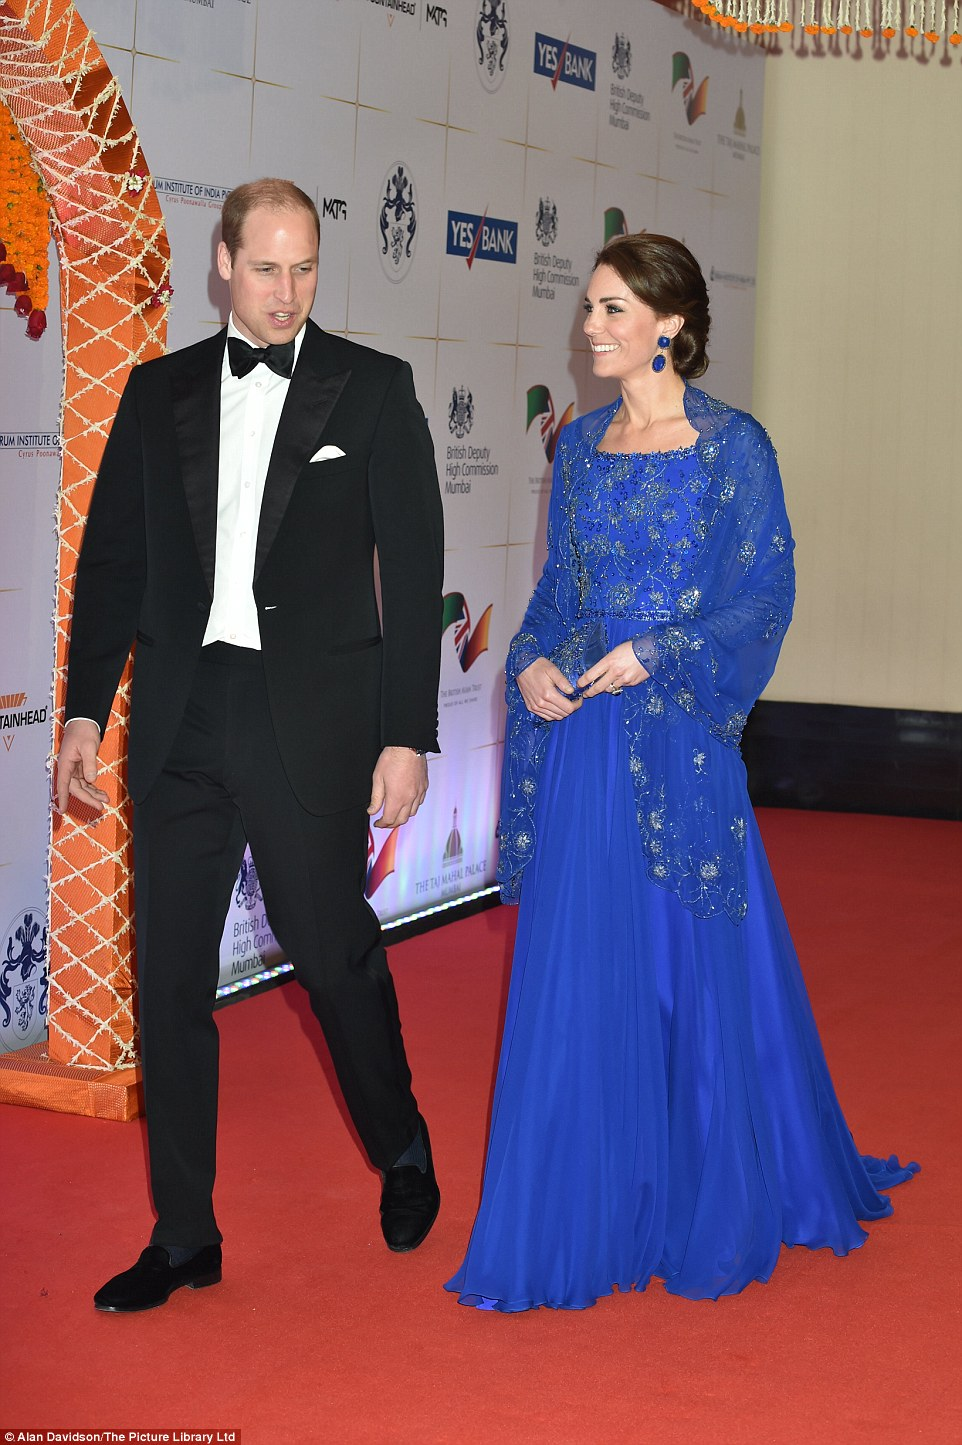 Kate Middleton wore a Jenny Packham gown with silver embellishments and beadings